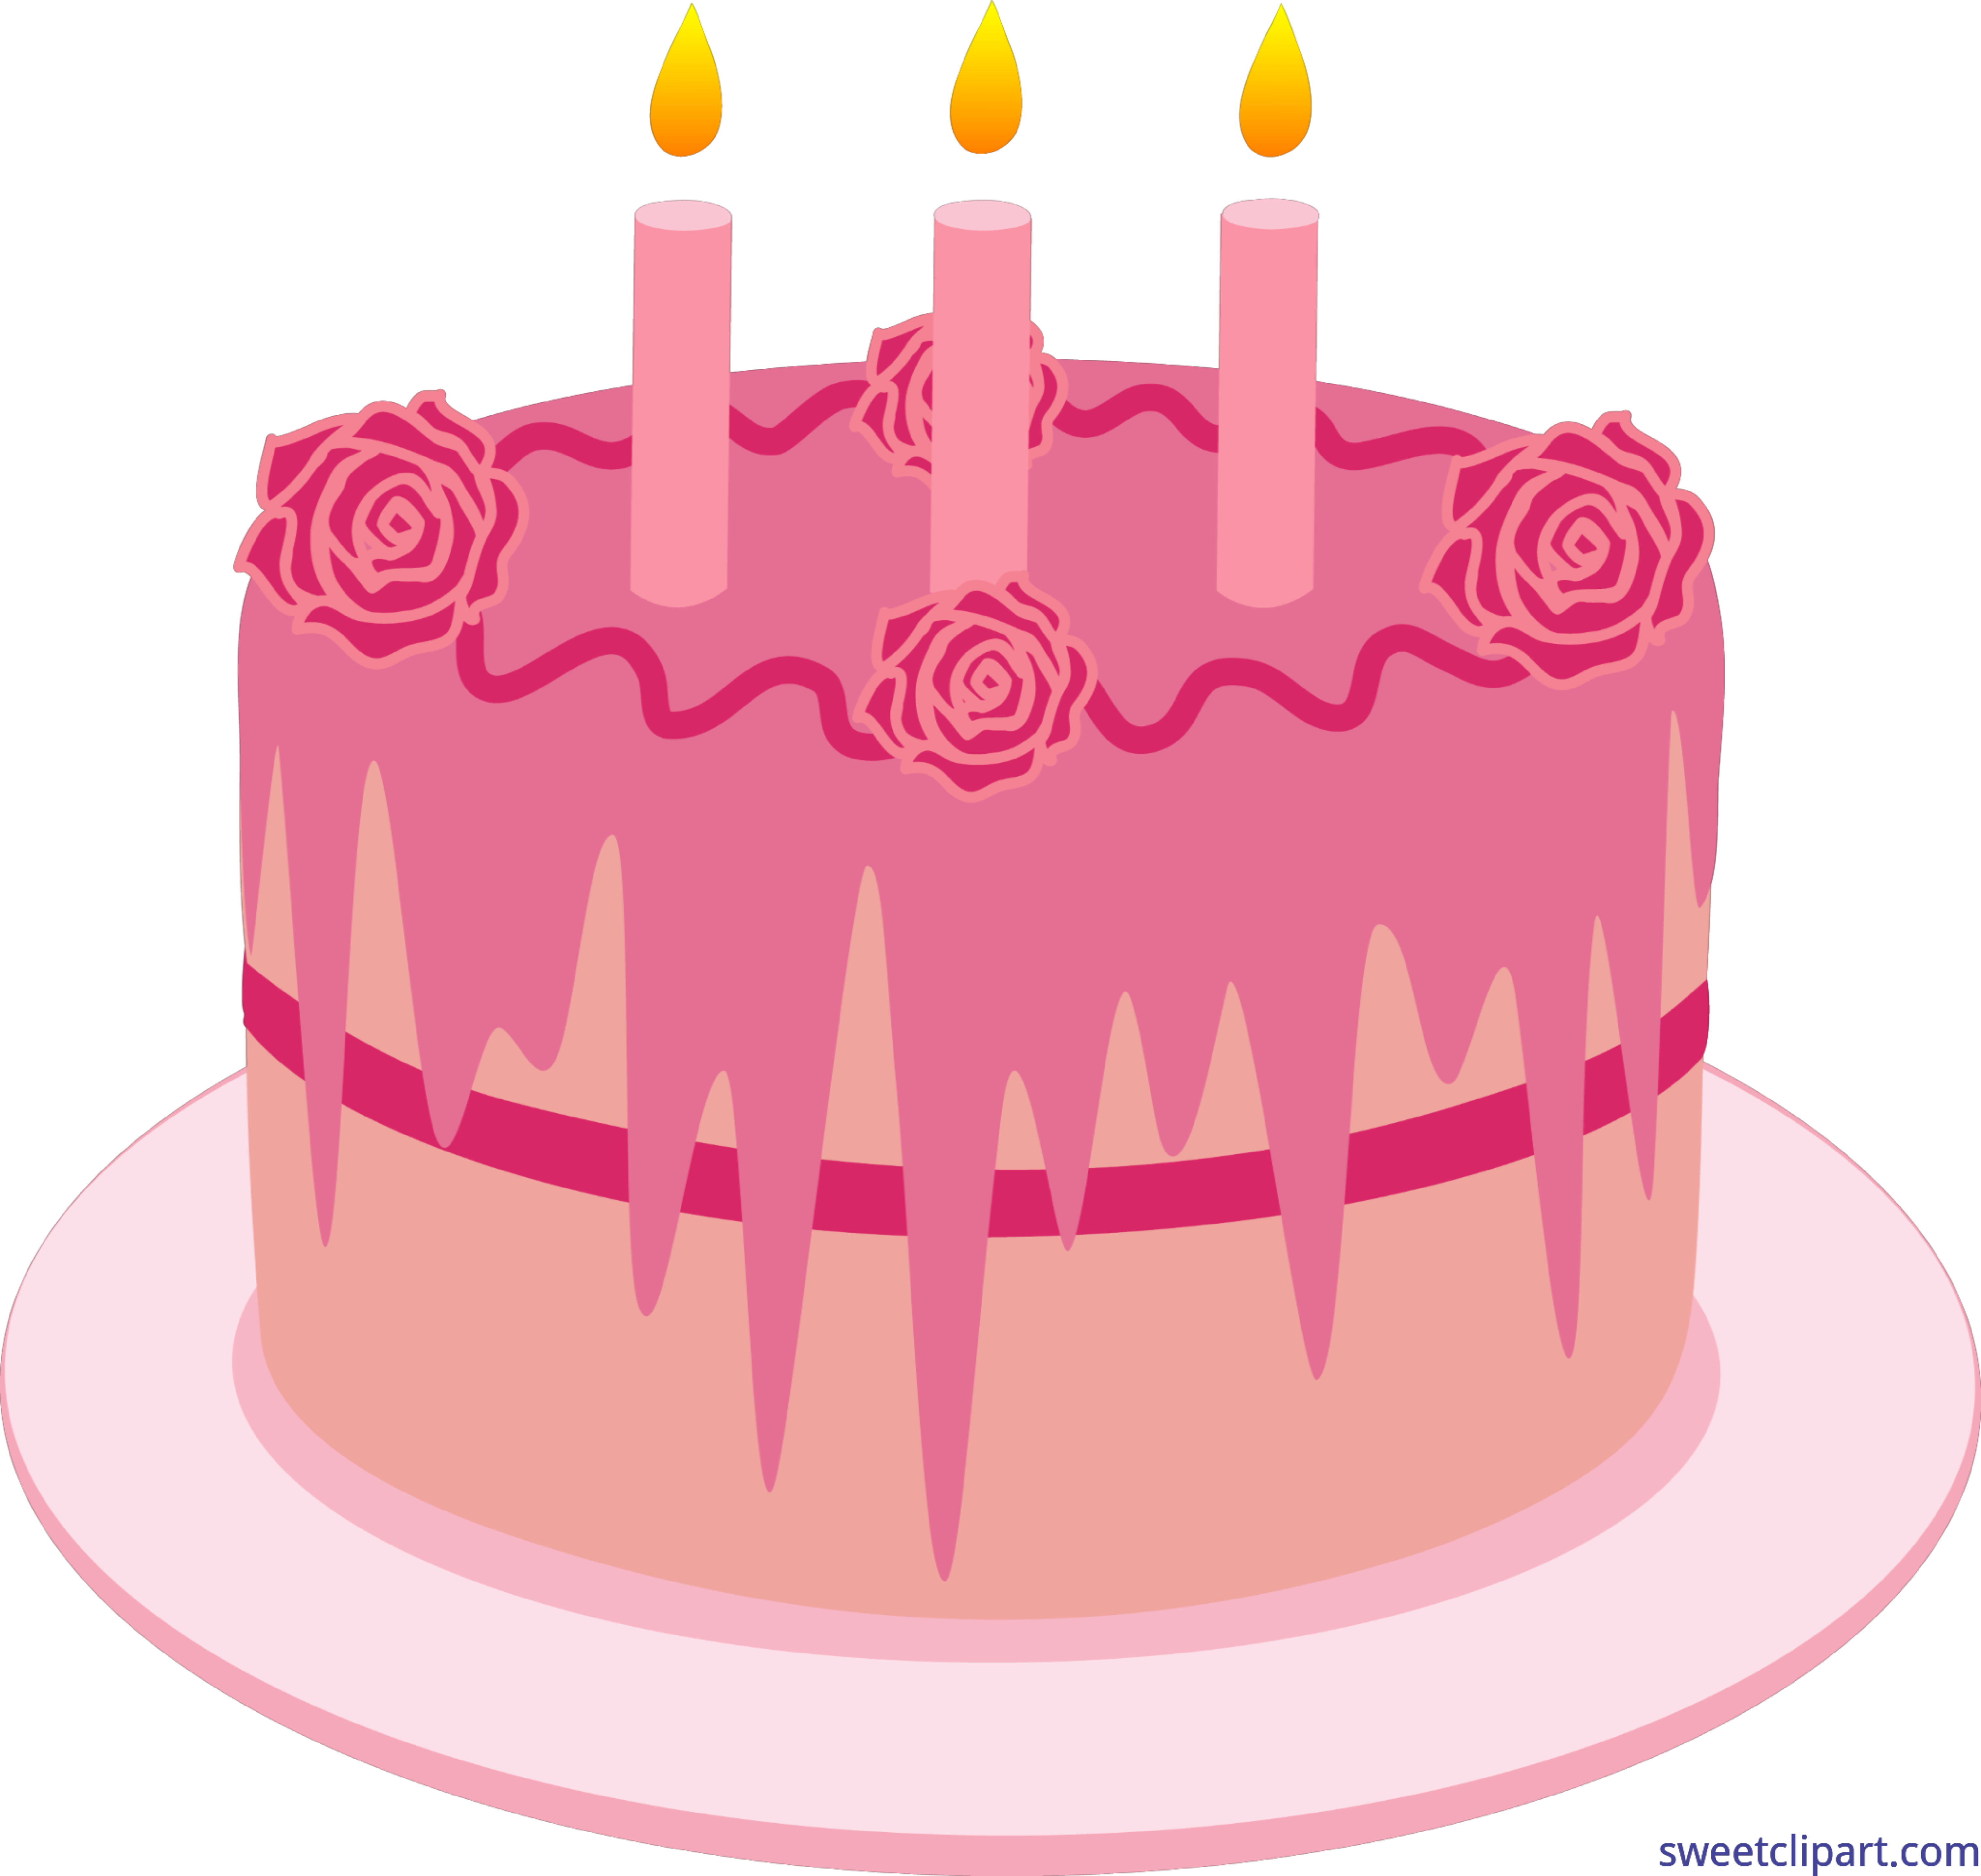 Cadles and cakes with pink candles clipart images image free stock Birthday Cake Candles Strawberry Clip Art - Sweet Clip Art image free stock